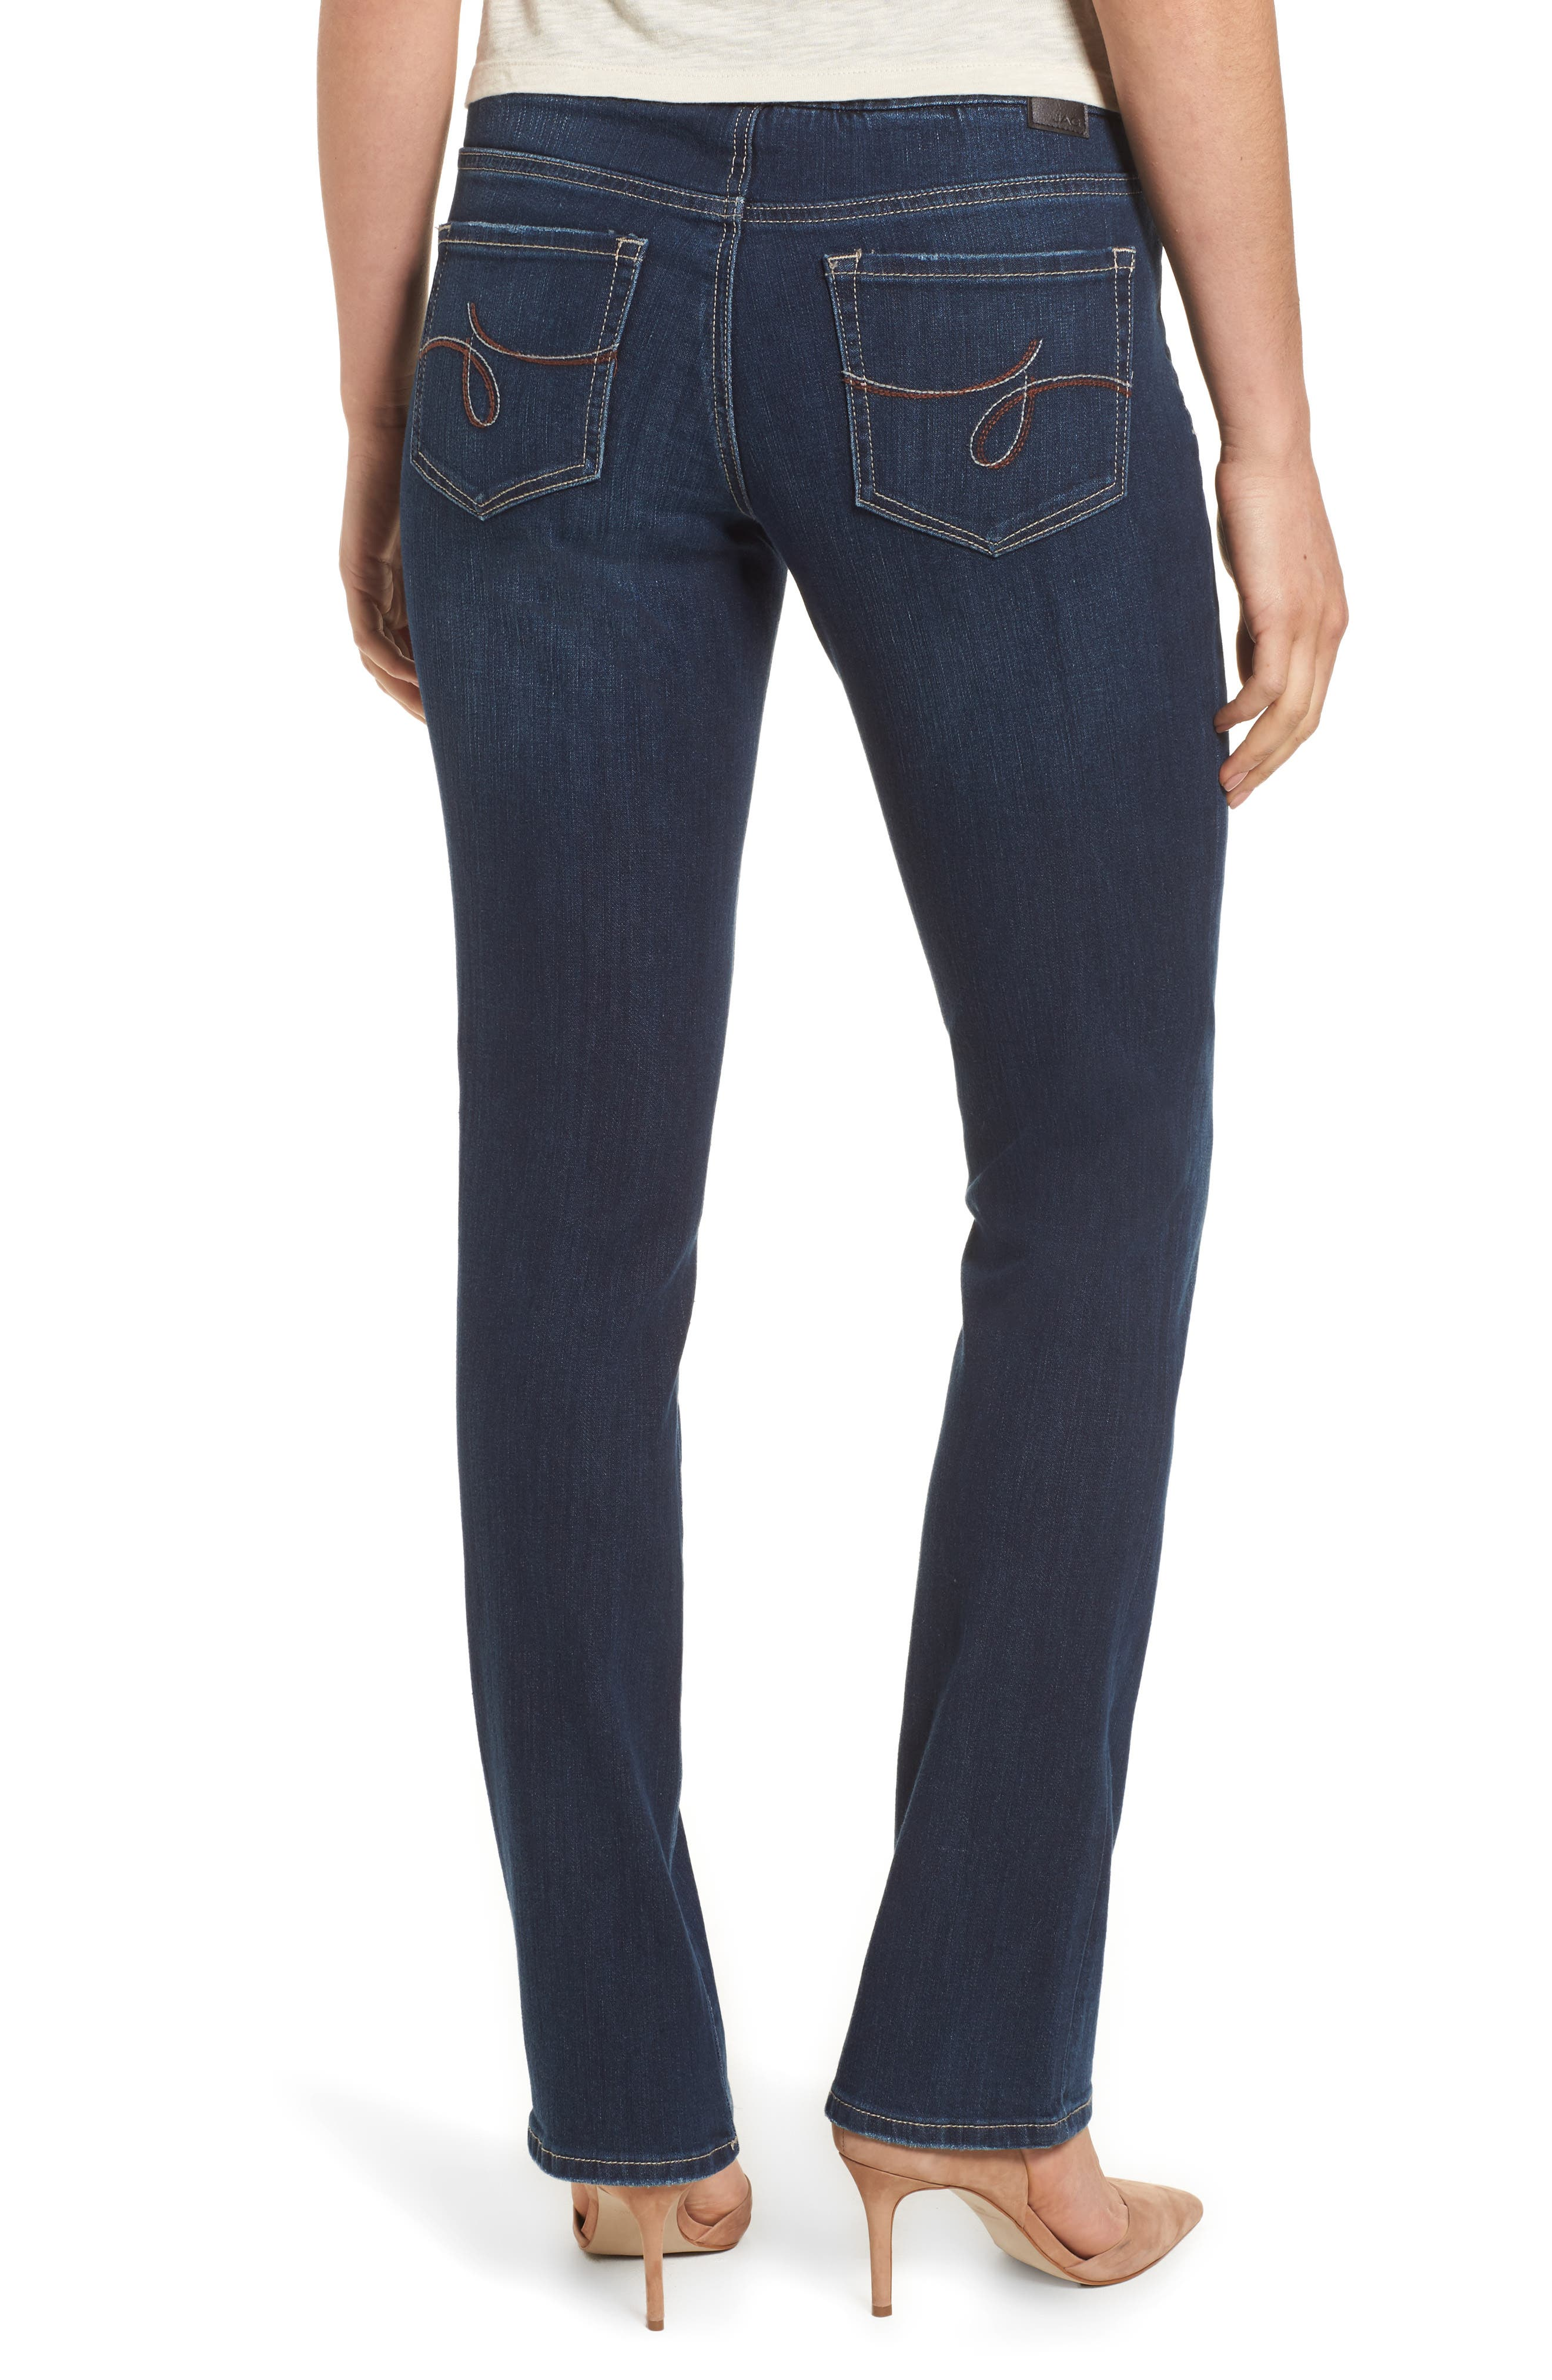 Paley Stretch Bootcut Jeans,                             Alternate thumbnail 2, color,                             DARK INDIGO